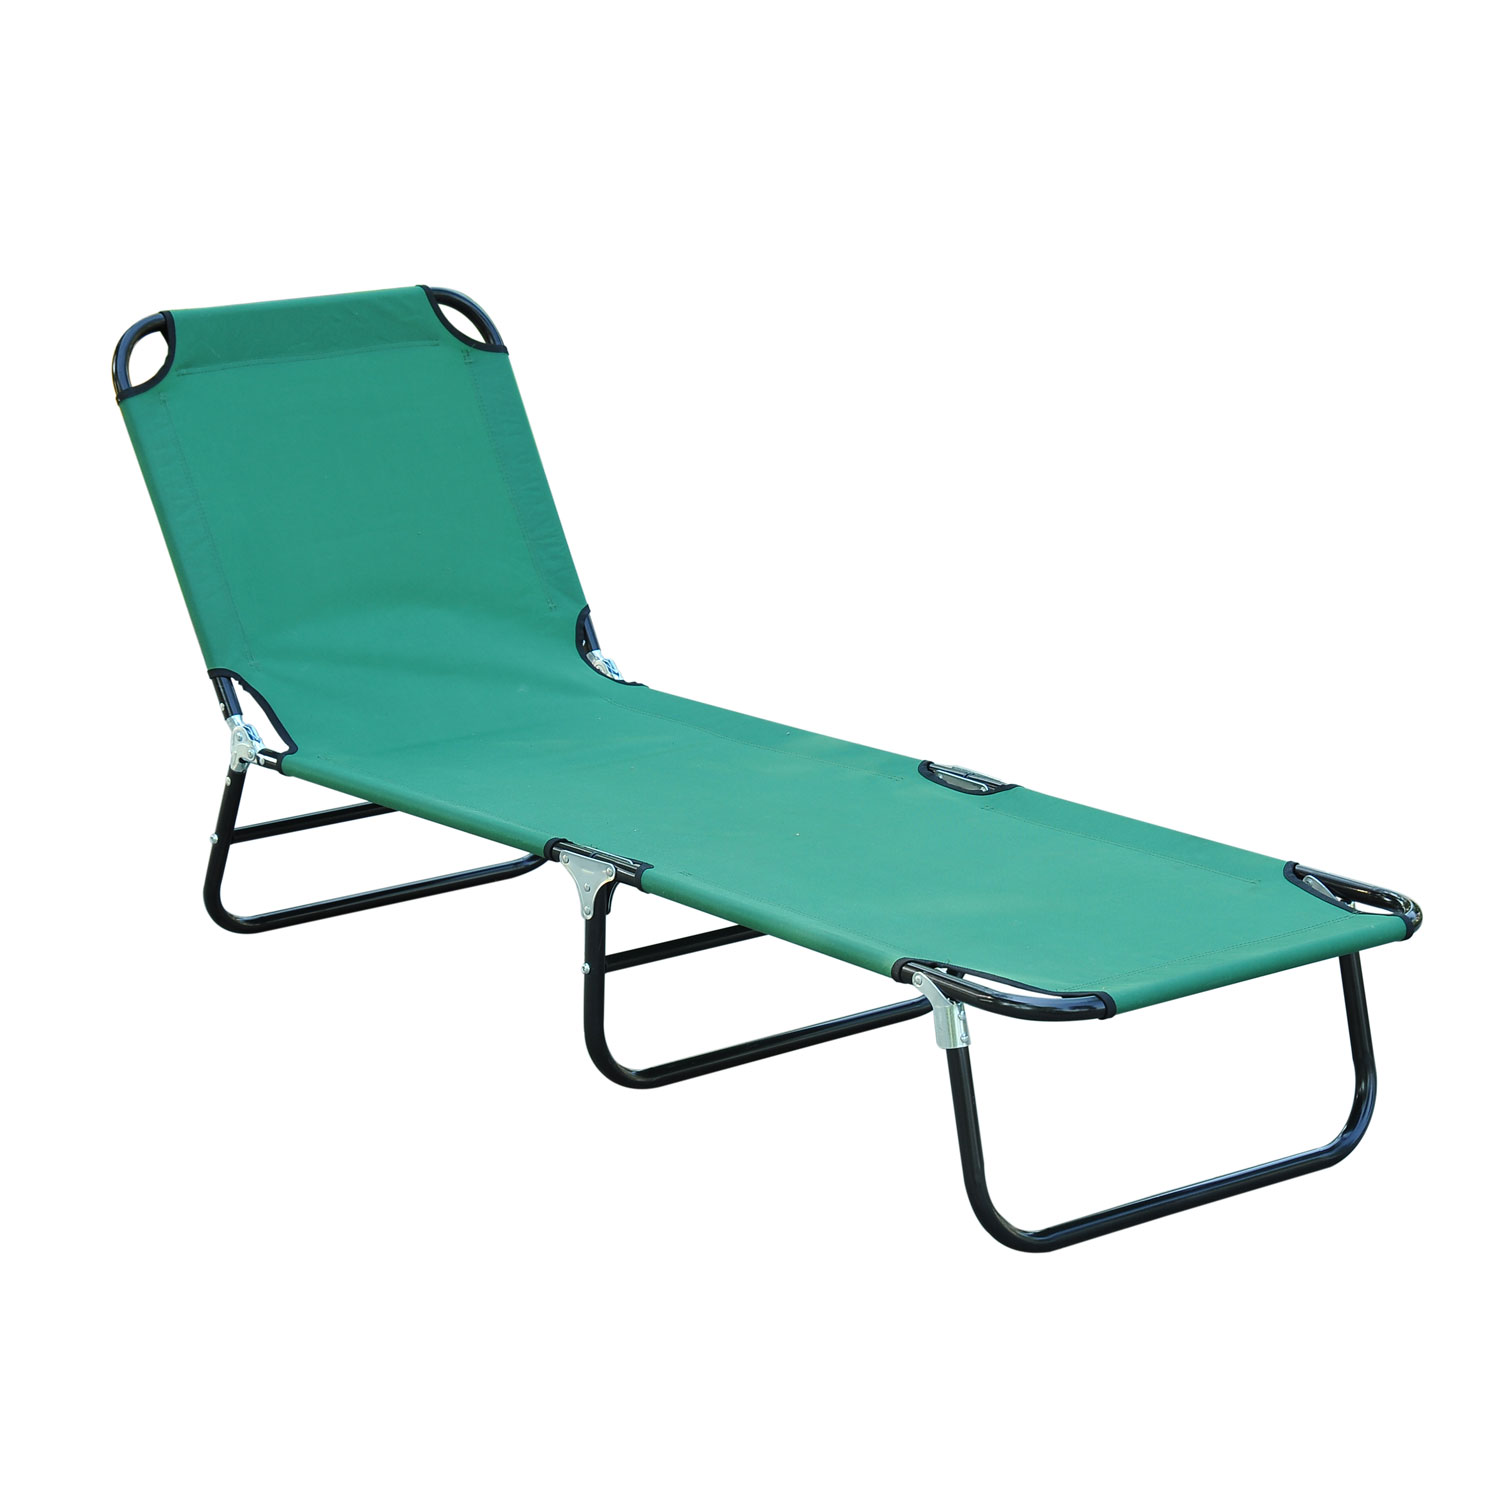 Outsunny Deluxe Folding Adjustable Sun Lounger Camping Cot